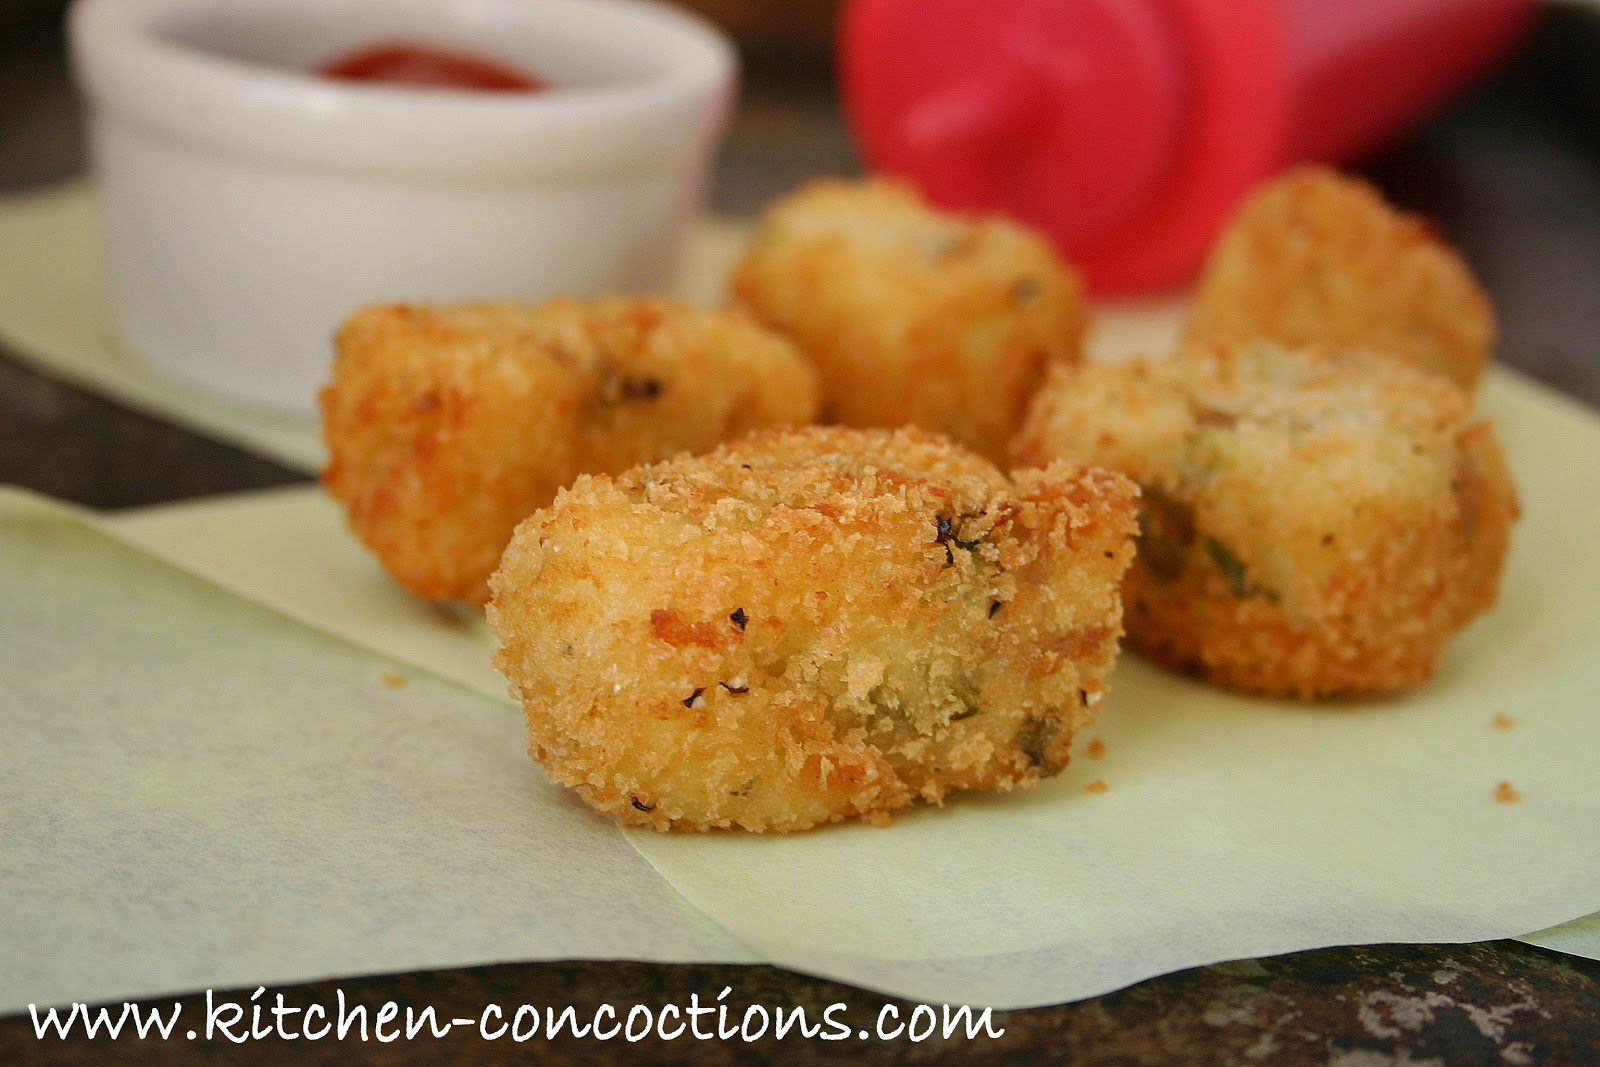 Homemade Tater Tots – Two Ways - Kitchen Concoctions